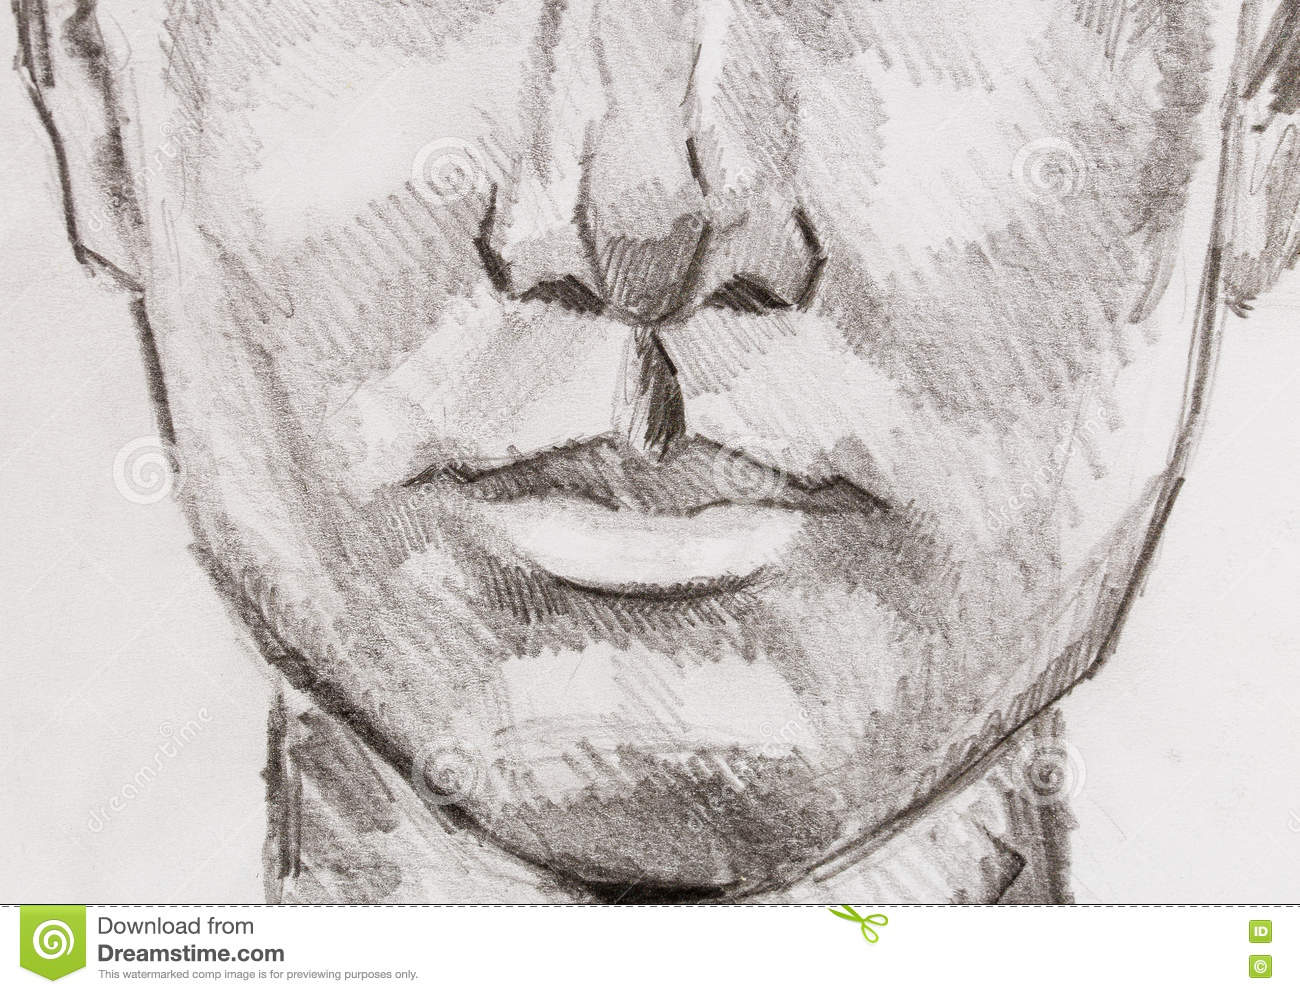 Woman lips pencil drawing on paper eye contact stock illustration